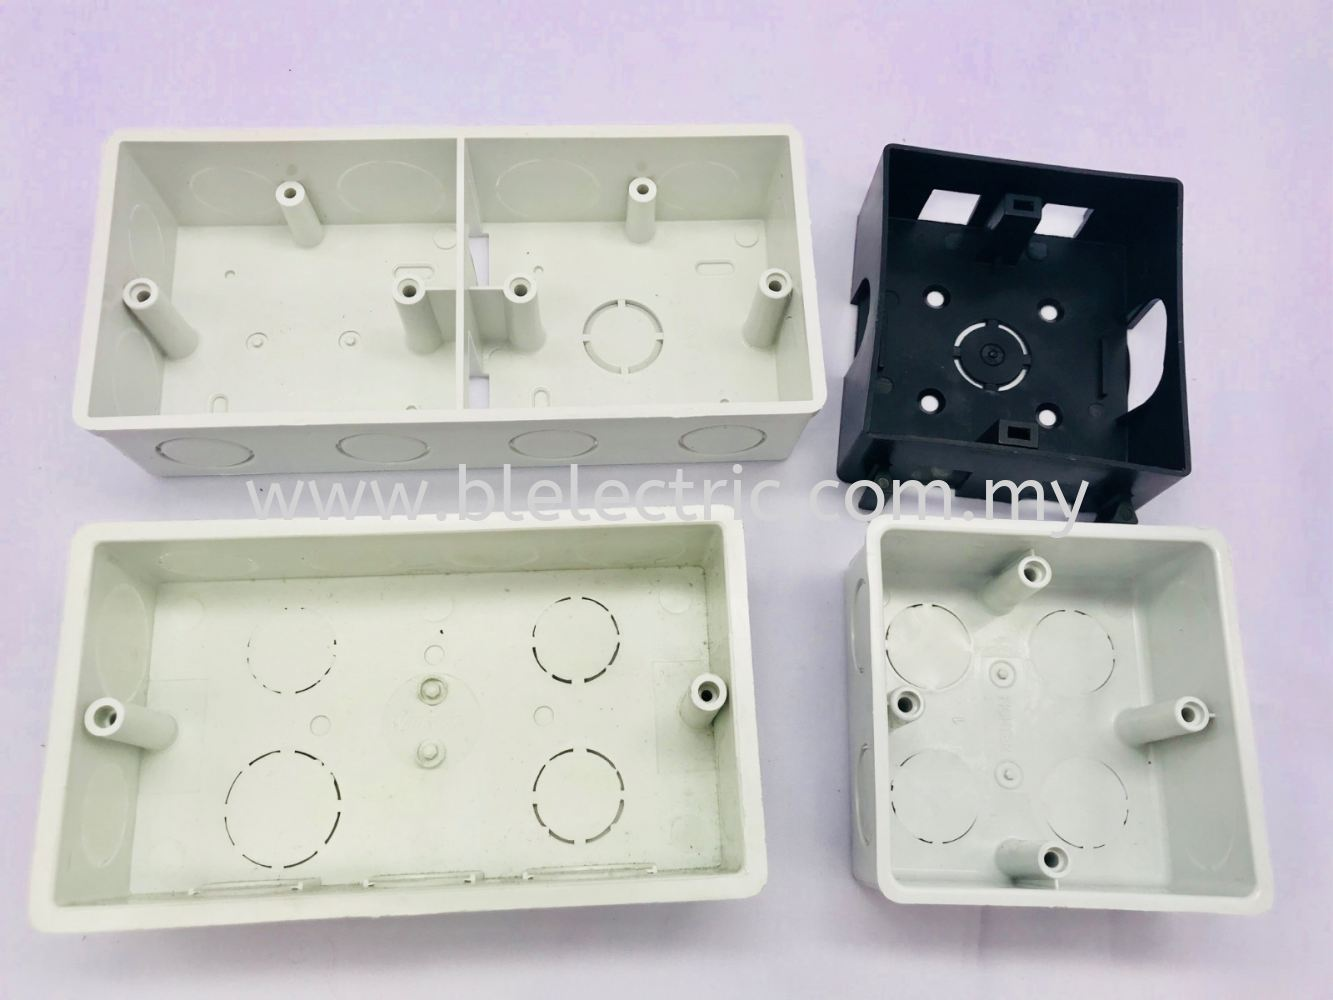 Pvc Conceal Box Kob Accessories Conduit Pipe Of Conduits Pipes Electrical Trunkings Plumbing Allpvc